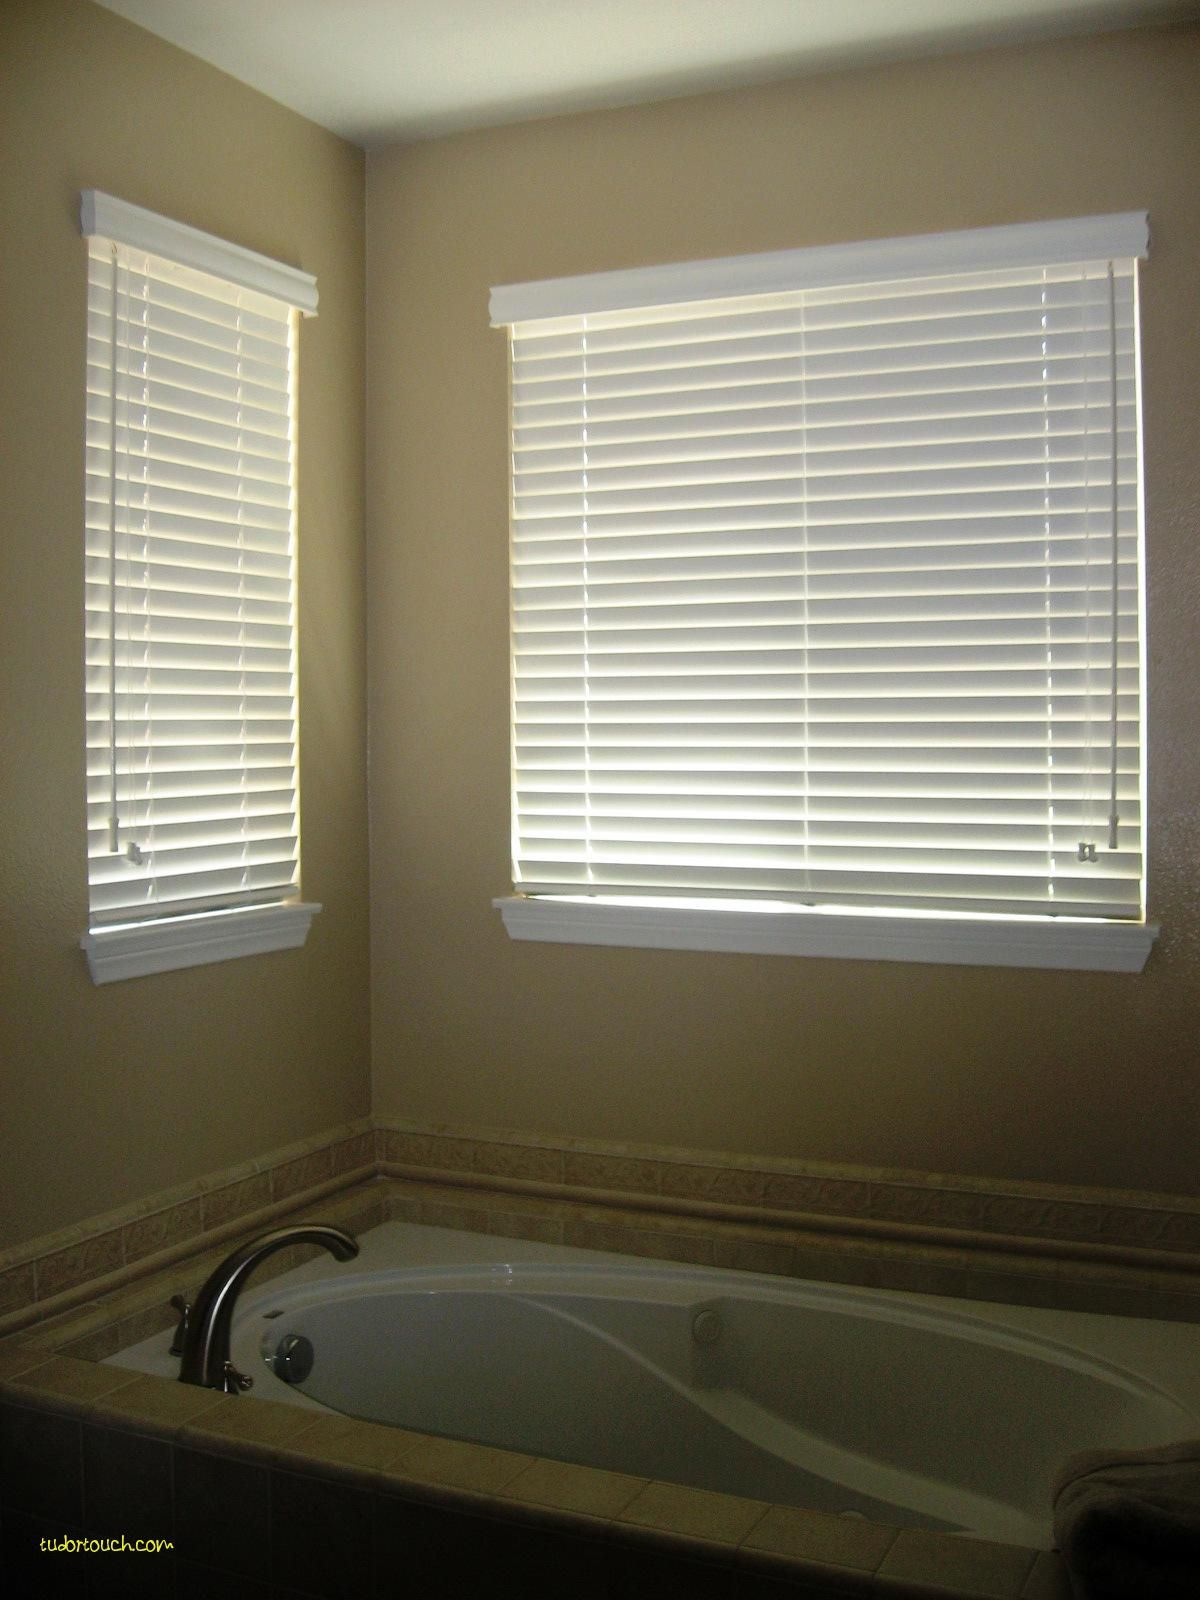 Pin By Arl Nachor On Blinds For Windows In 2020 Blinds For Windows Blinds Faux Wood Blinds